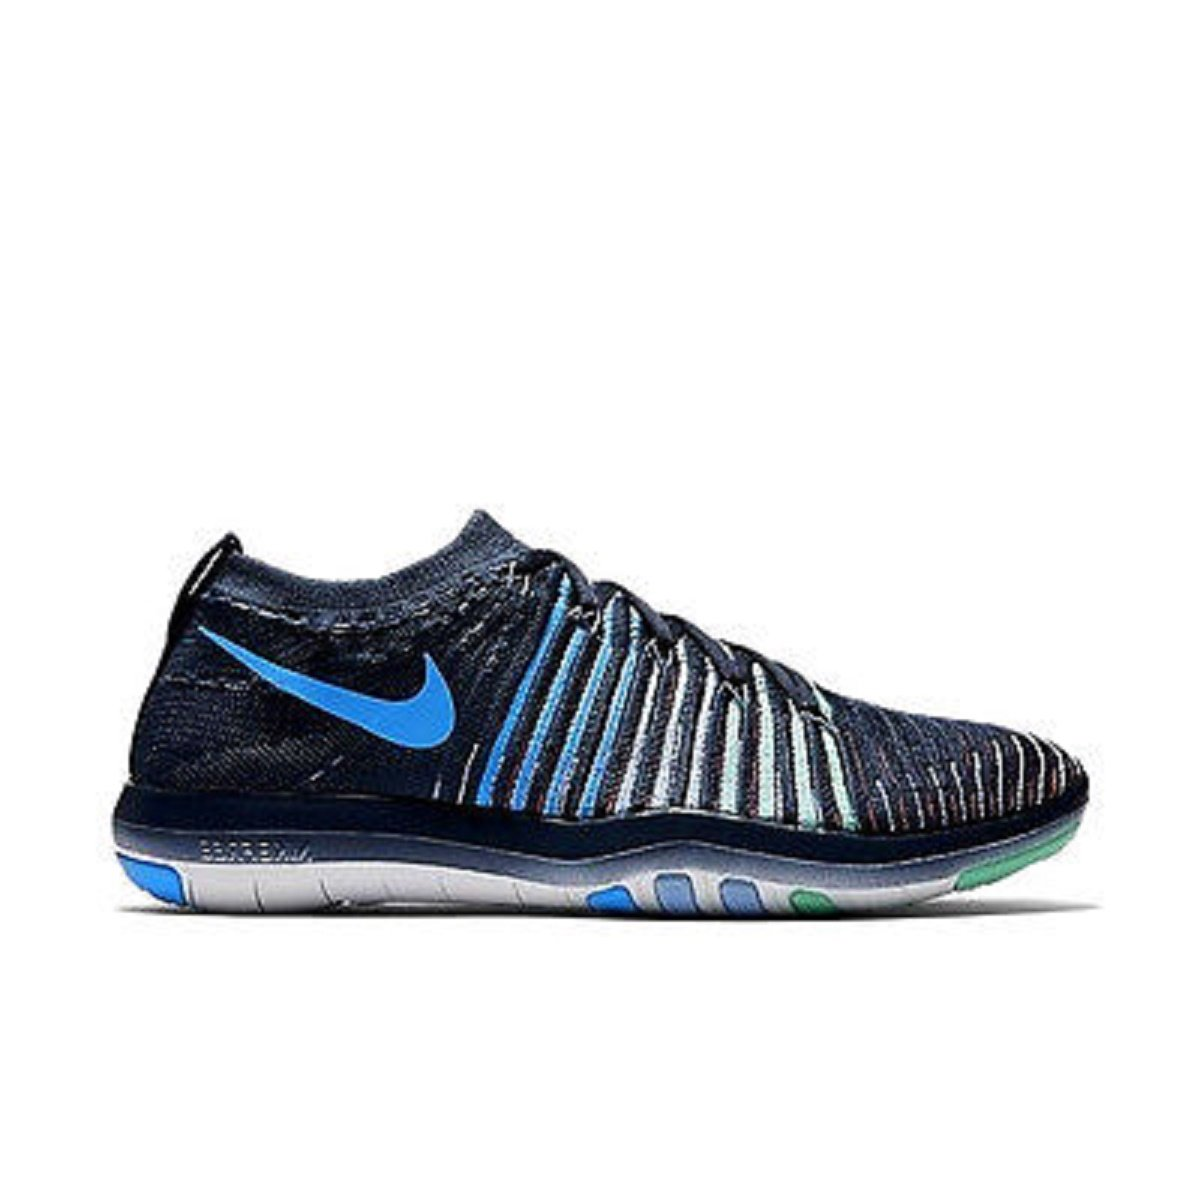 NIKE Womens Free Focus Flyknit Mesh Breathable Trainers B01MF5D4SQ 7.5 B(M) US|Squadron Blue/Green Glow/Summit White/Blue Glow